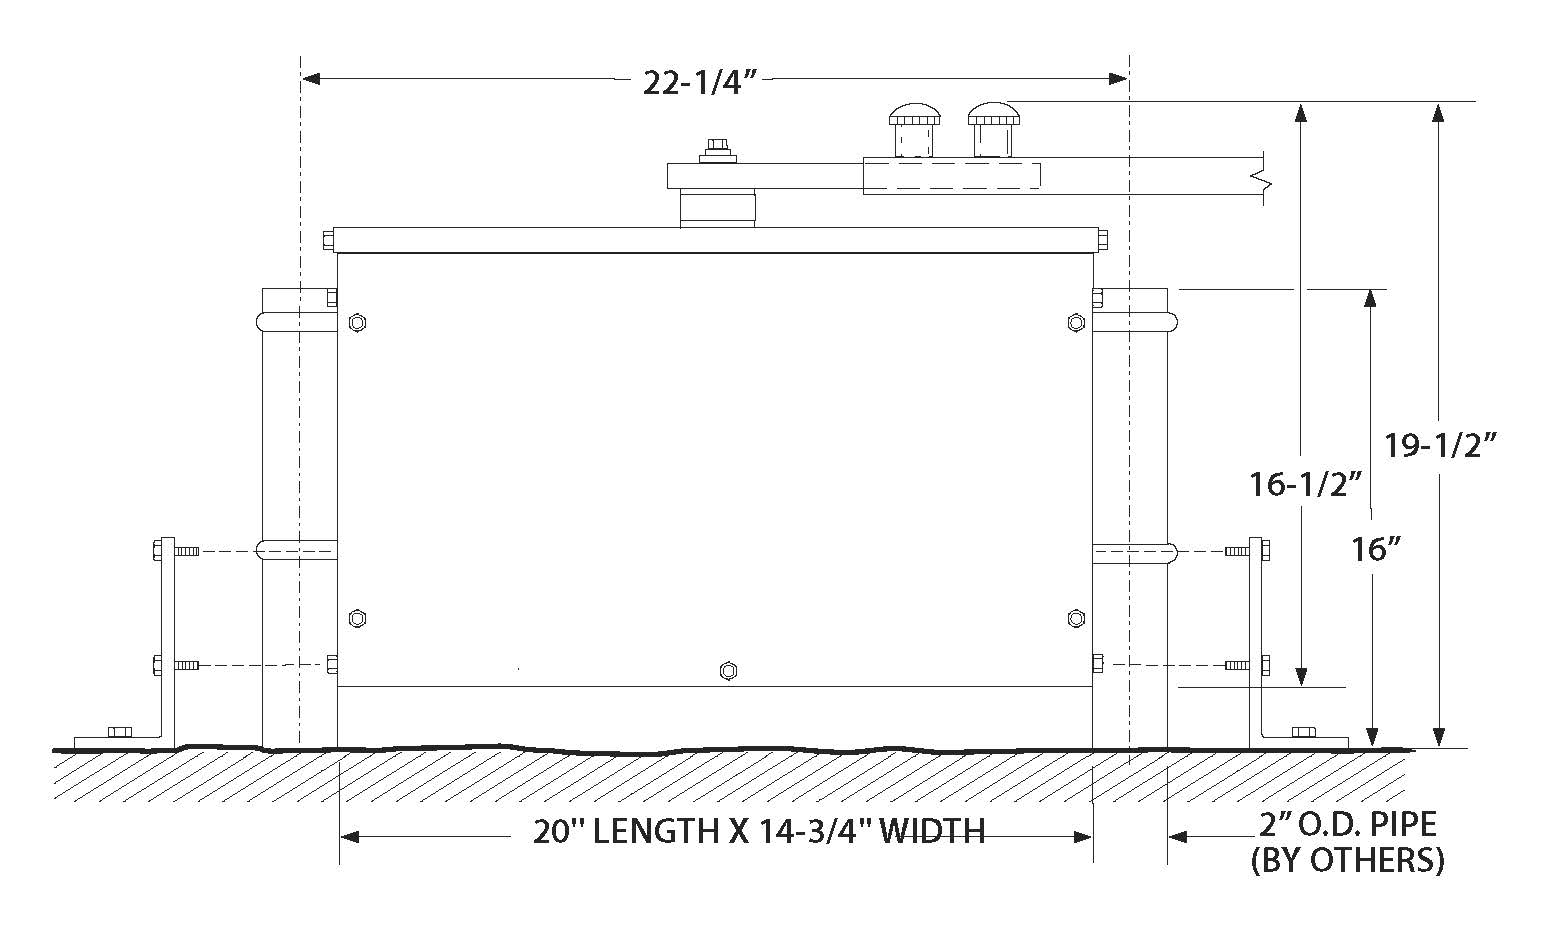 MSW Line Drawing